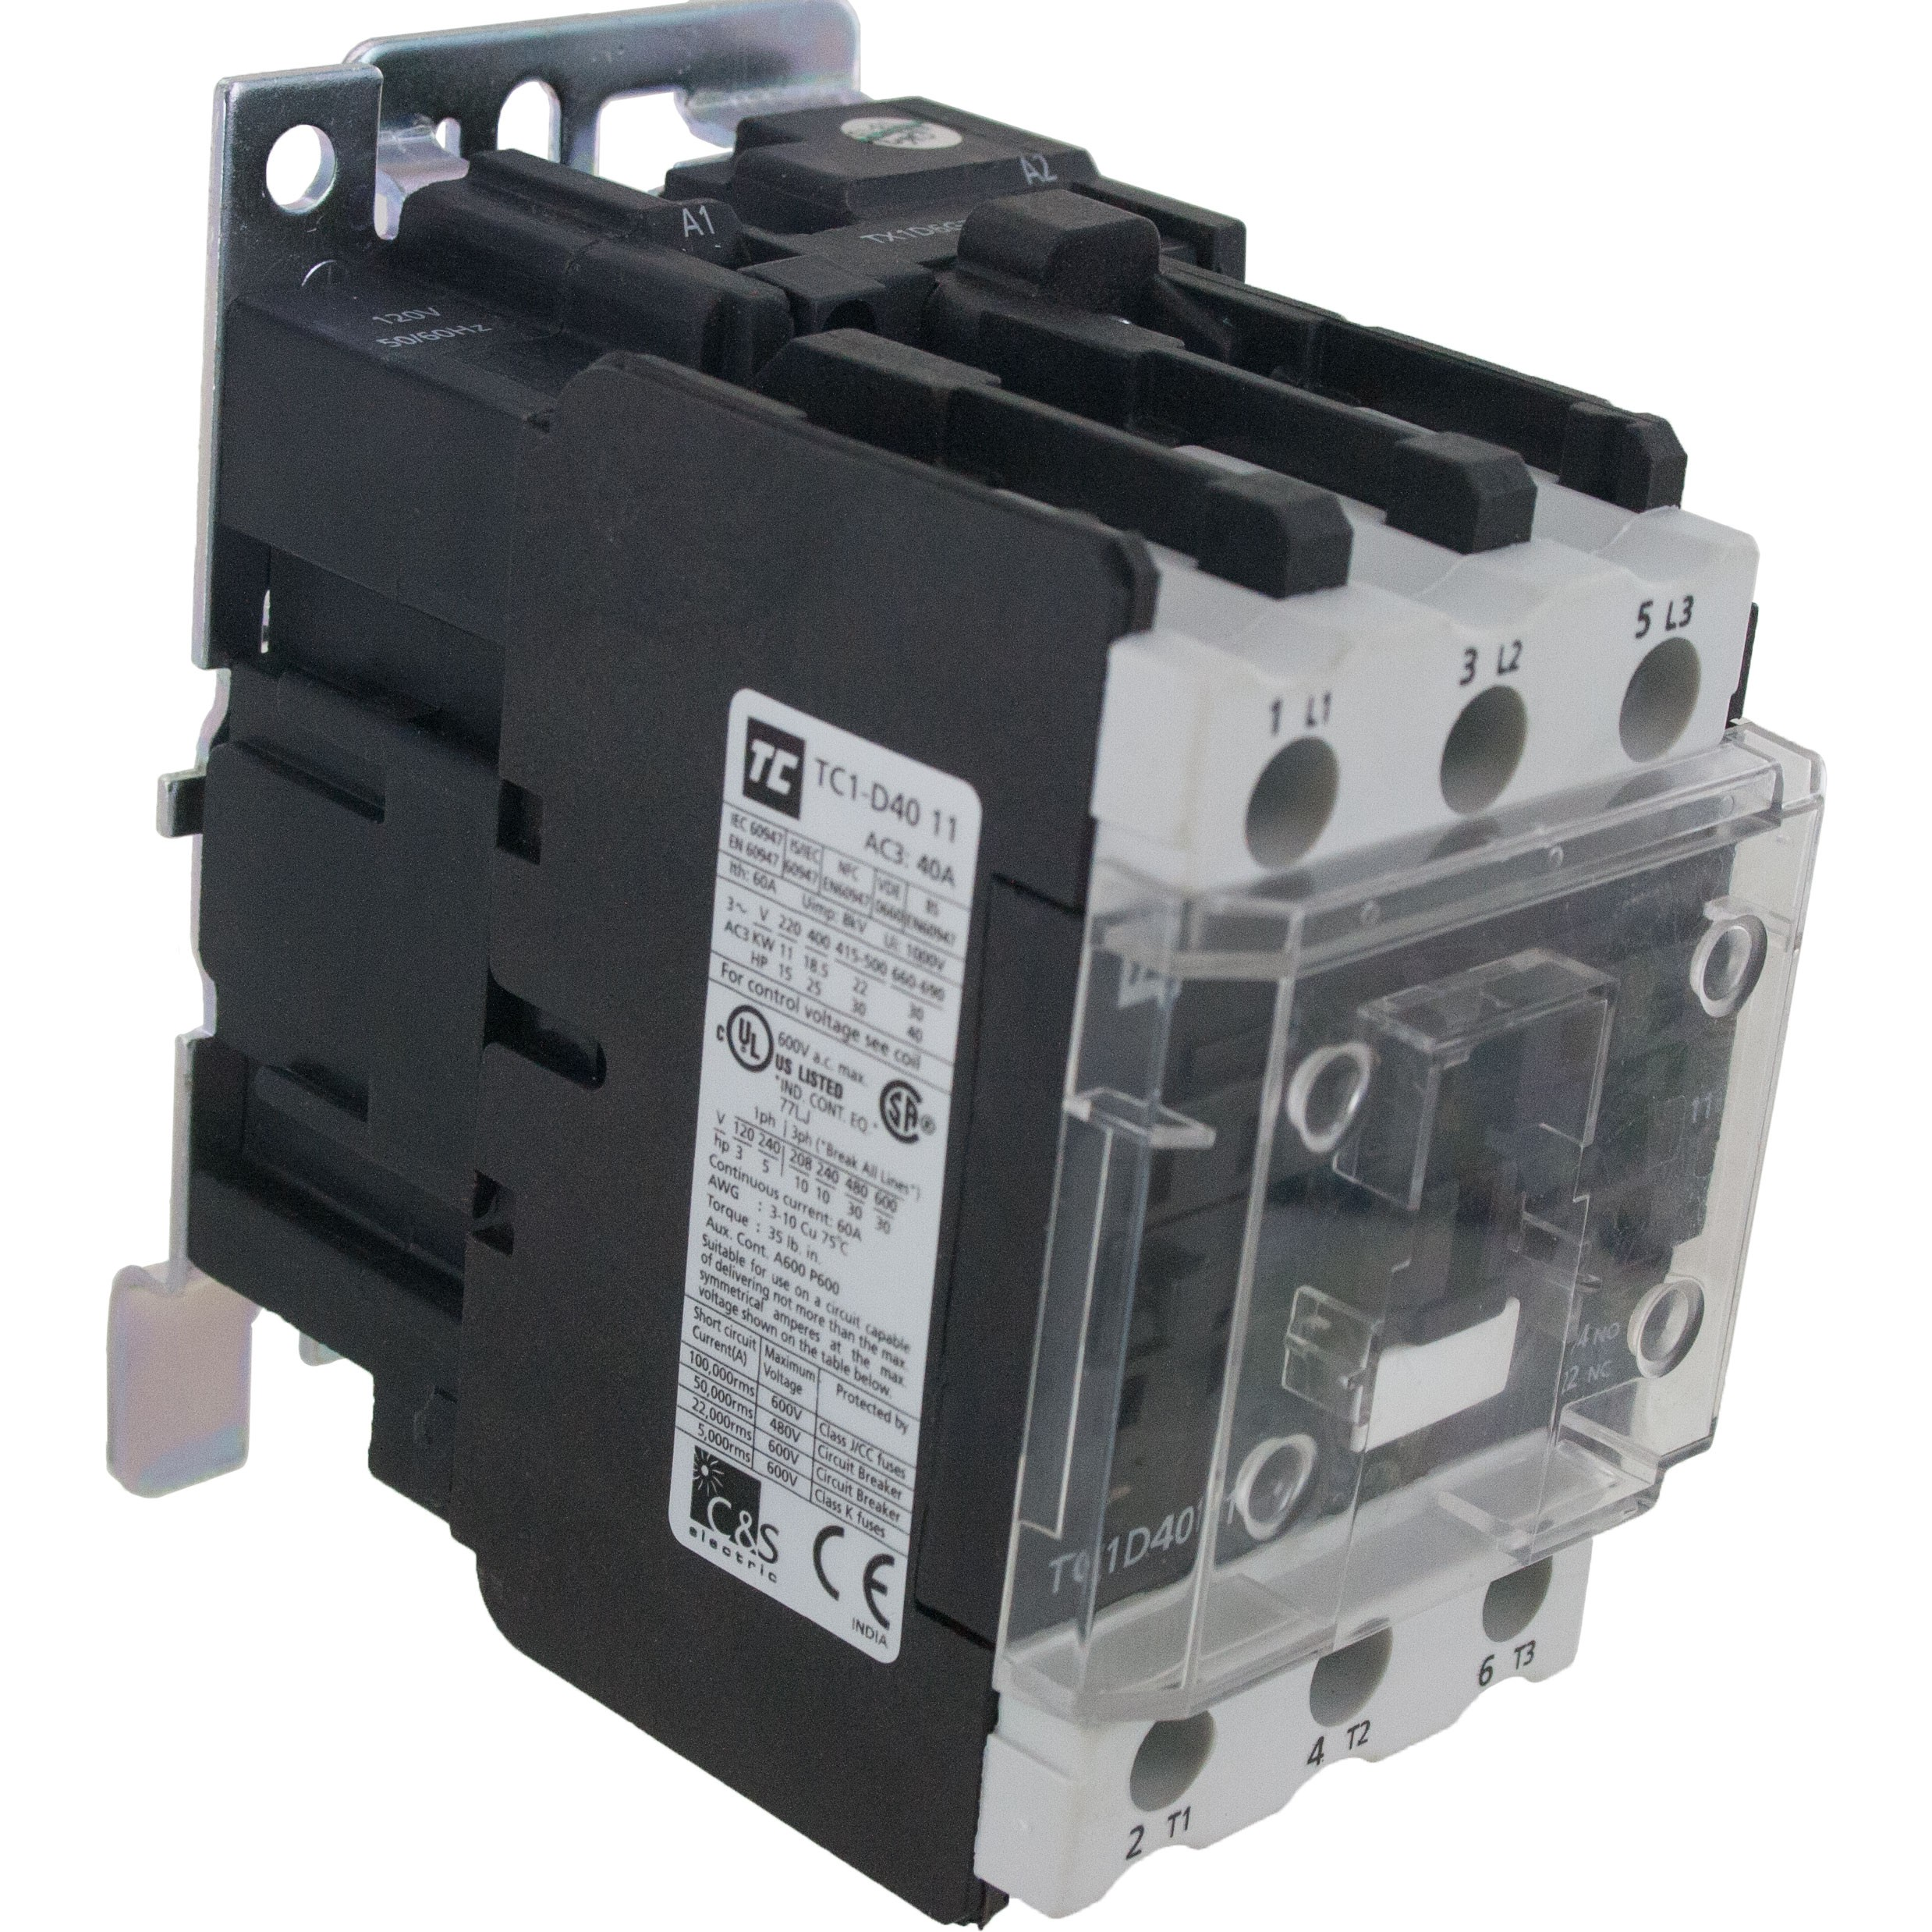 3 Pole Contactor 40 Amp 1 N/O - 1 N/C 220 Volt AC Coil Angle